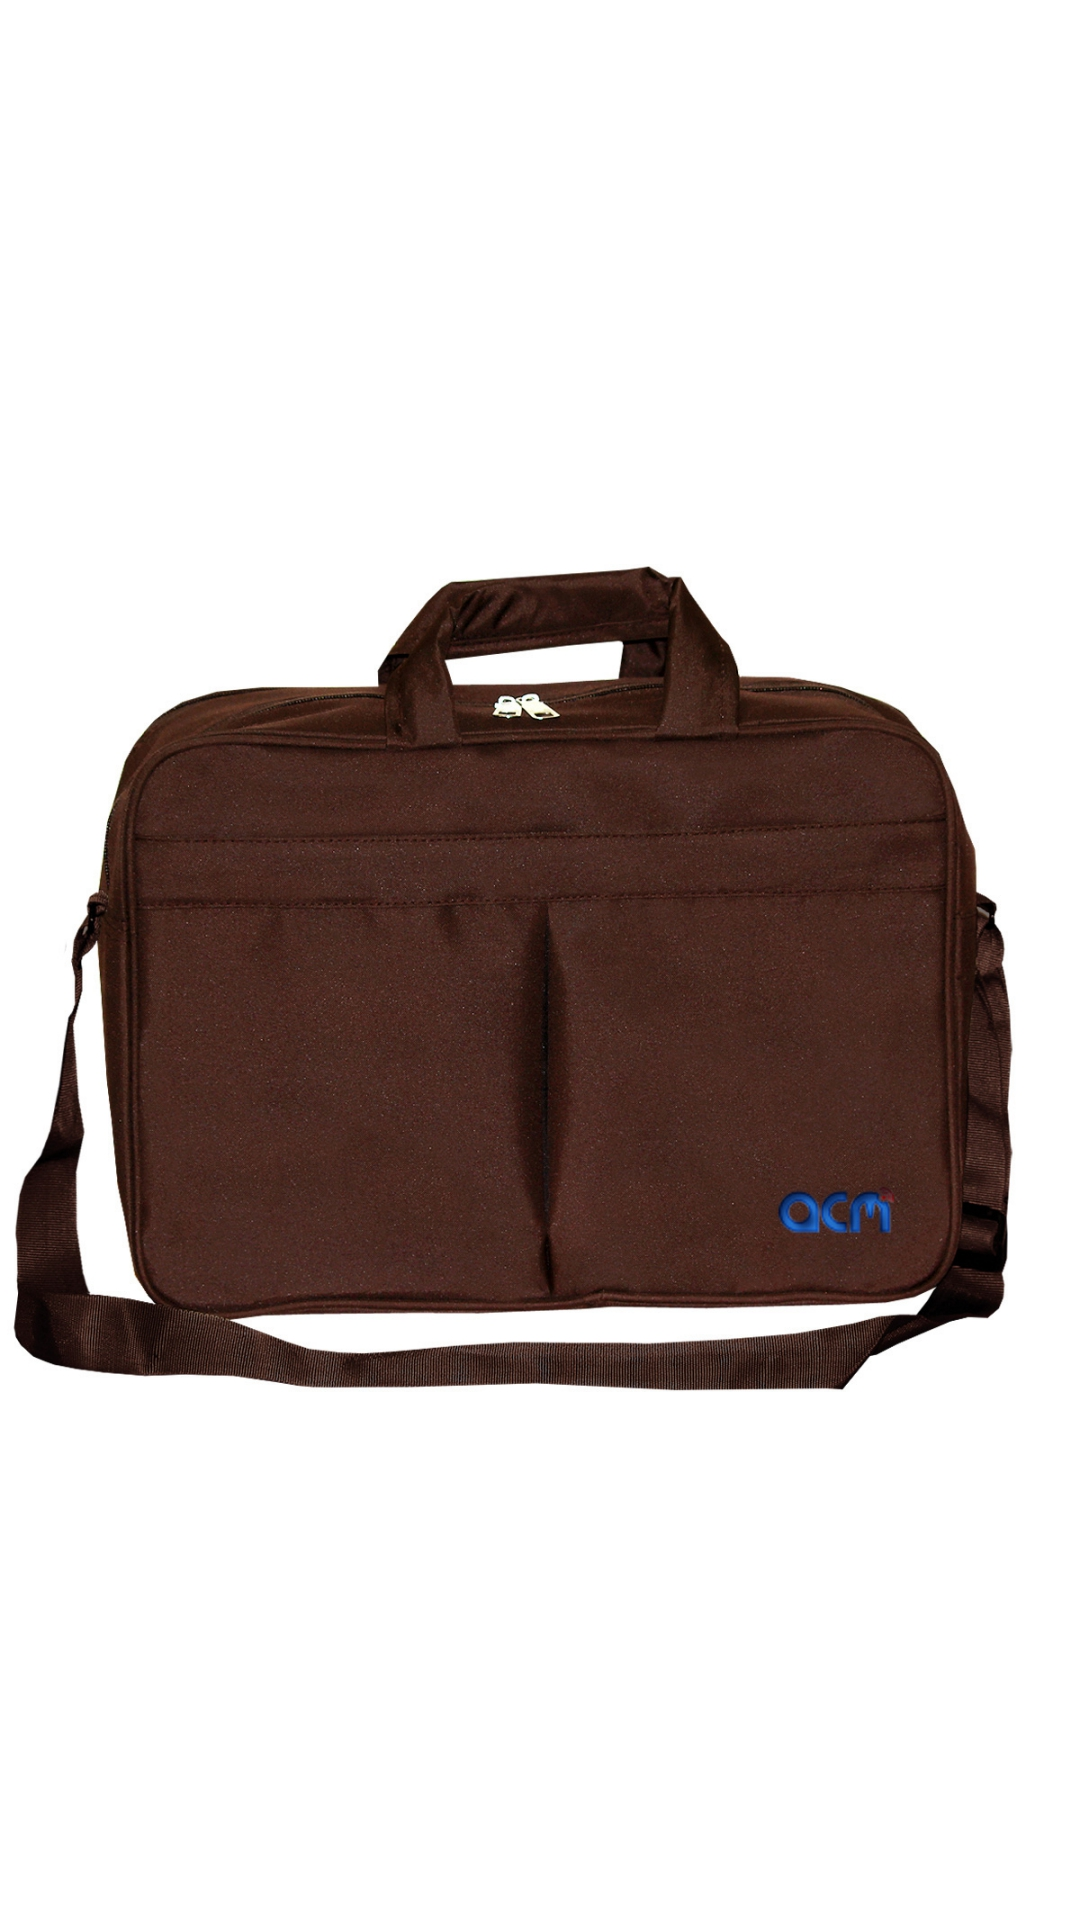 """Acm Executive Office Padded Laptop Bag for Lenovo Ideapad 100 15iby 80mj00paih 15.6"""" Laptop Brown Image"""